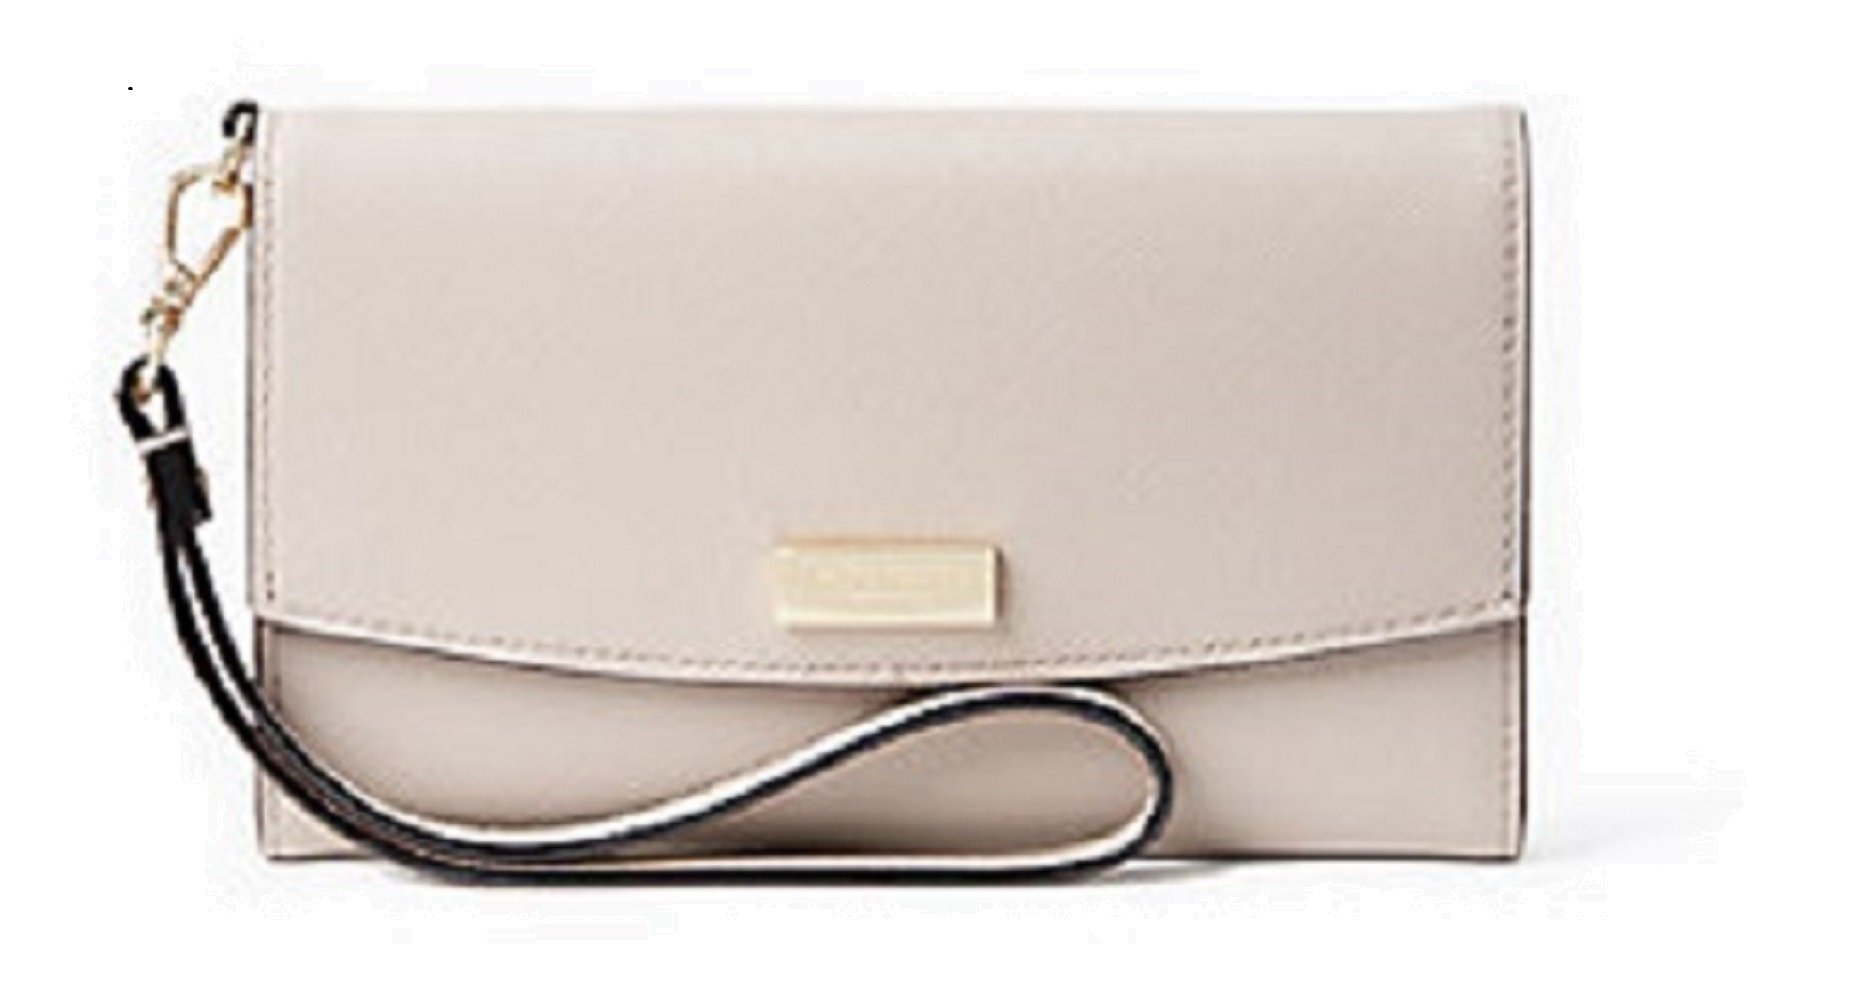 KATE SPADE LAUREL WAY I PHONE 6/6 PLUS WRISTLET CARD CASE WLRU2666 (Almondine) by Kate Spade New York